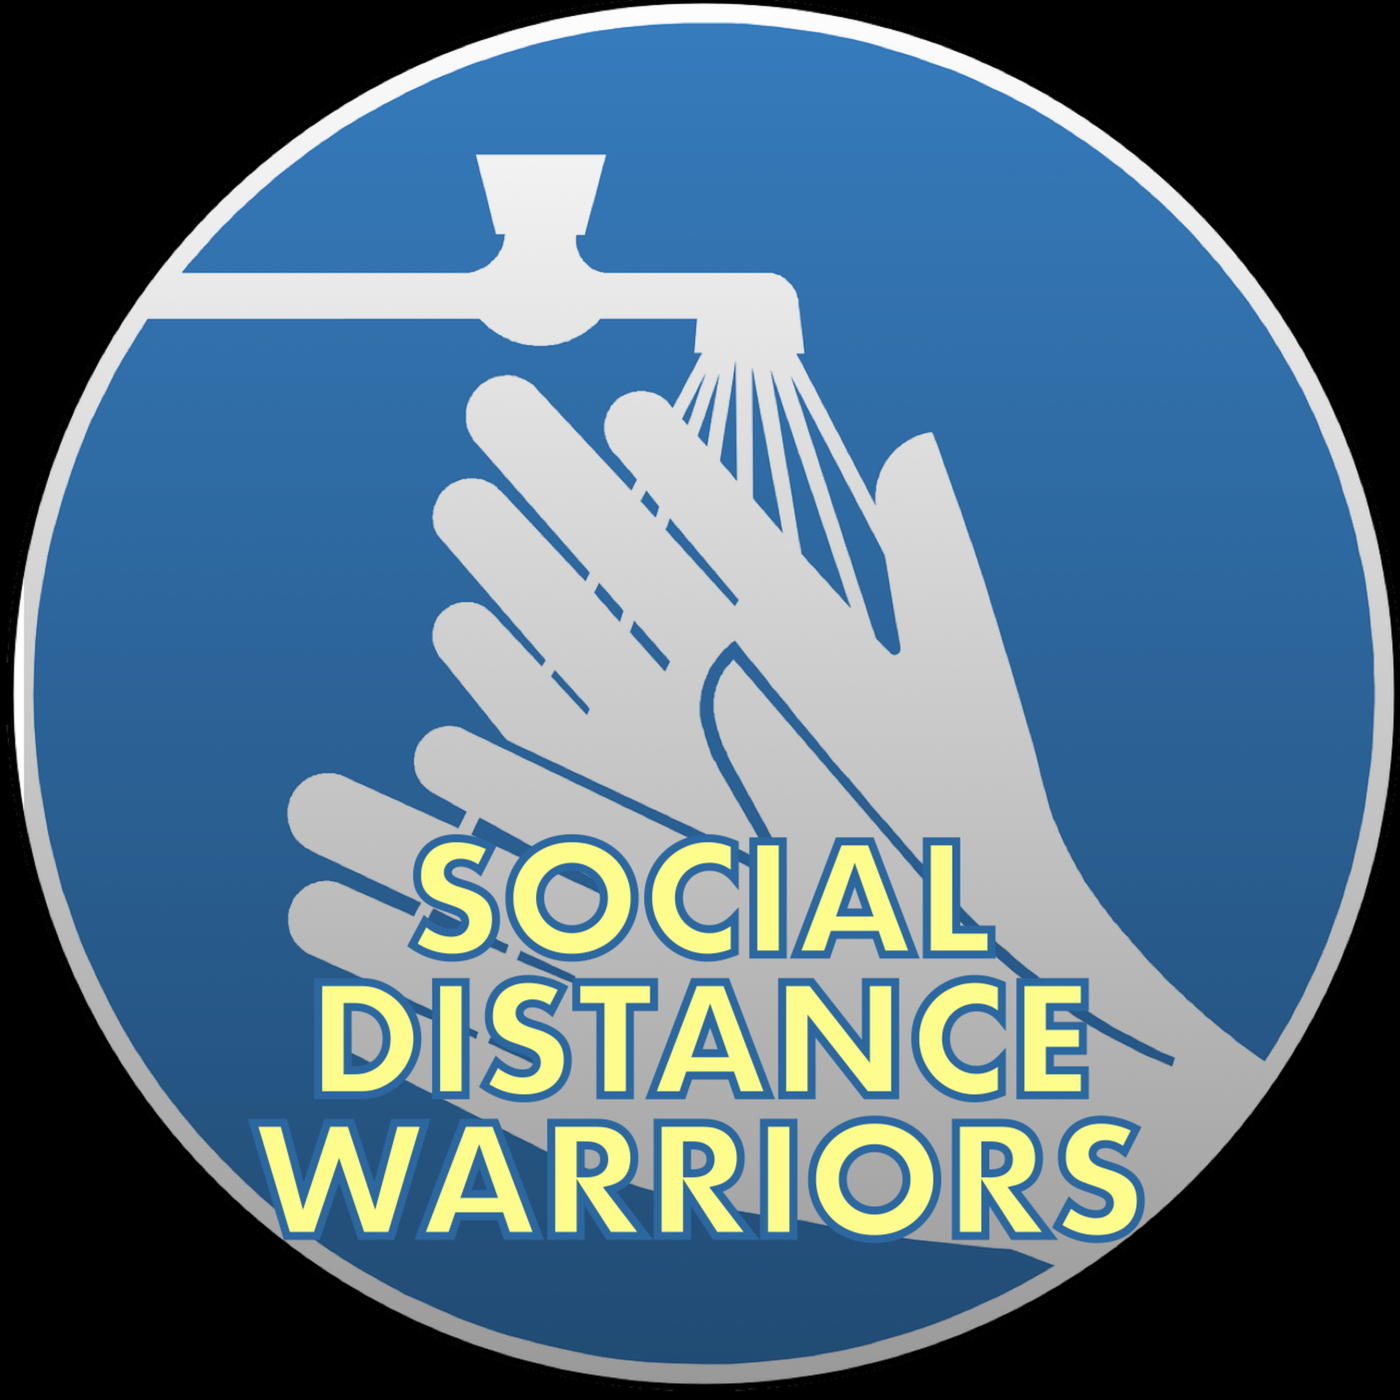 Social Distance Warriors 36: There's nothing, so I guess it's everything